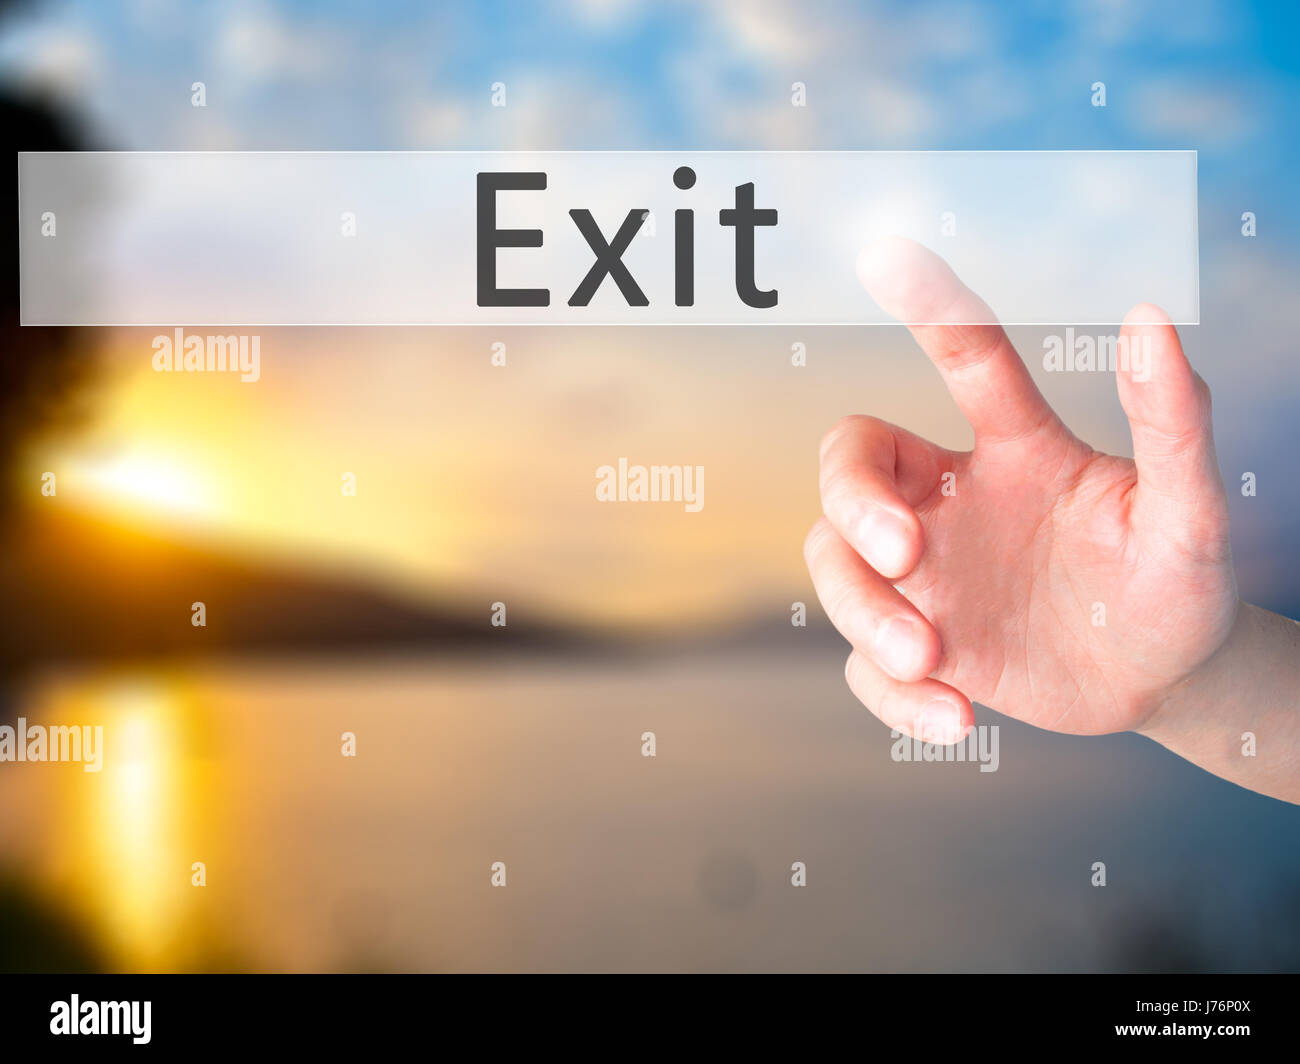 Exit - Hand pressing a button on blurred background concept . Business, technology, internet concept. Stock Photo - Stock Image